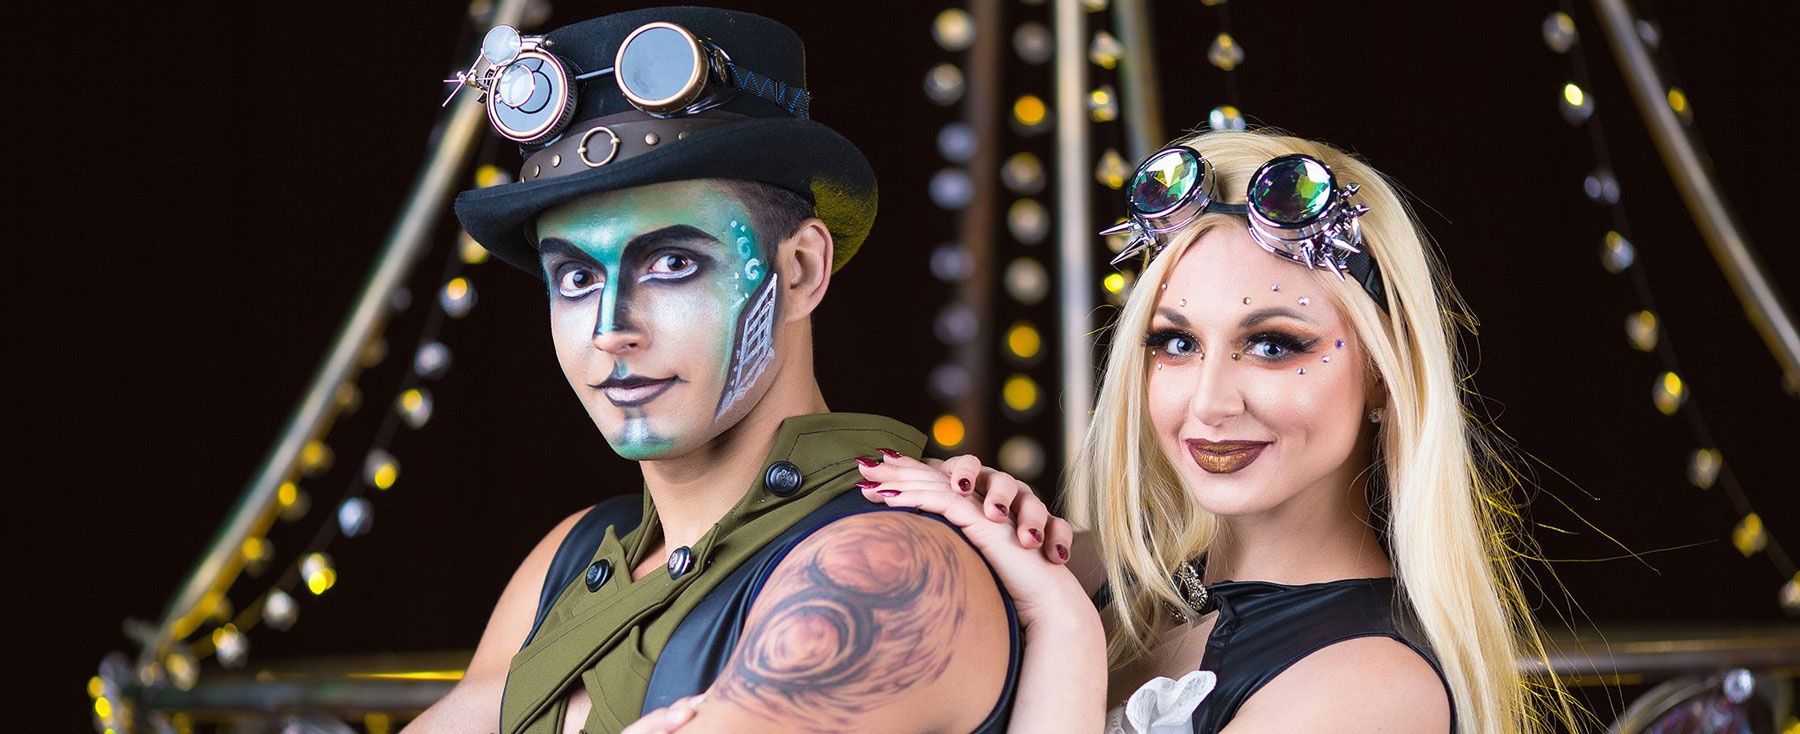 Circus Vargas Presents Steam Cirque - Top Things to Do